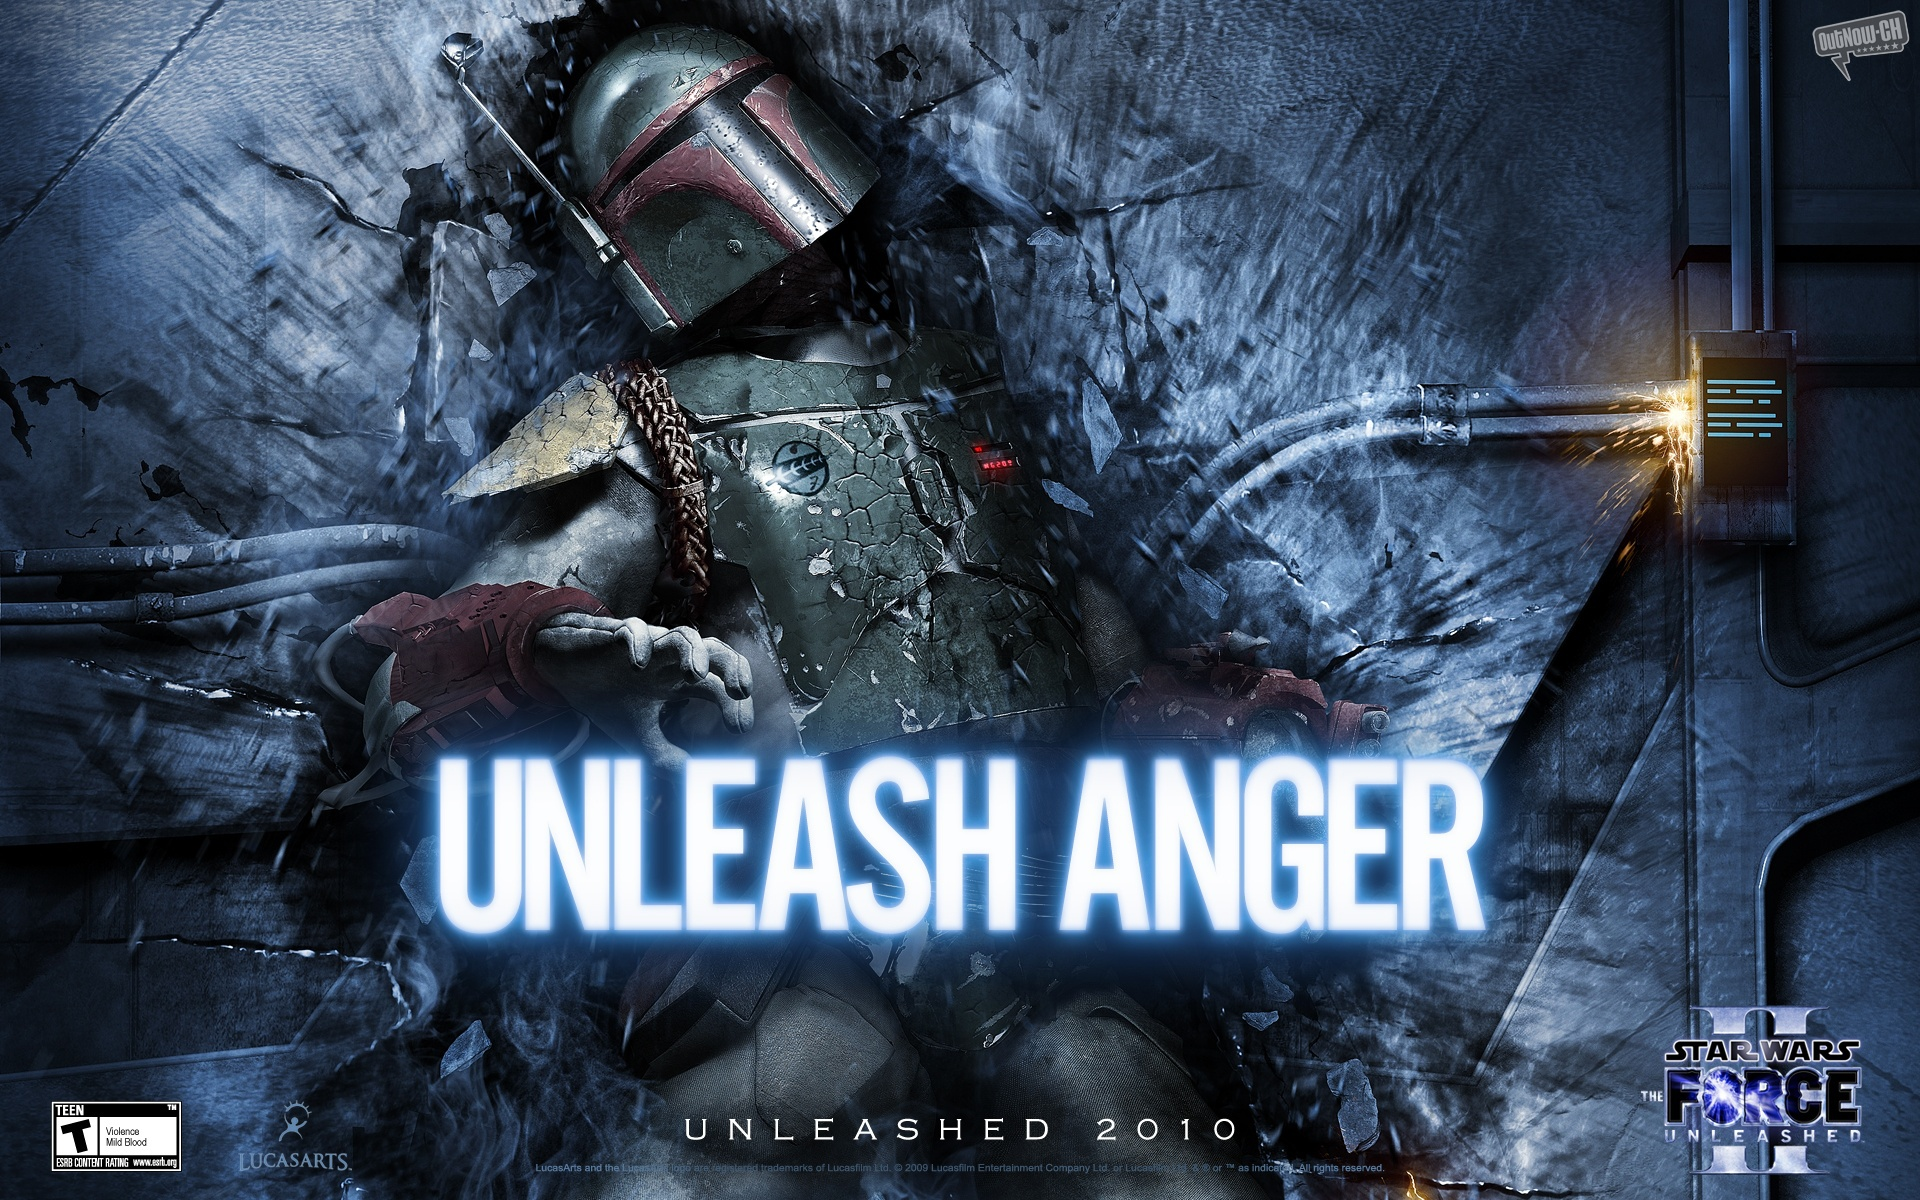 Star Wars The Force Unleashed 2 Wallpapers: Star Wars: Force Unleashed 2 Wallpapers